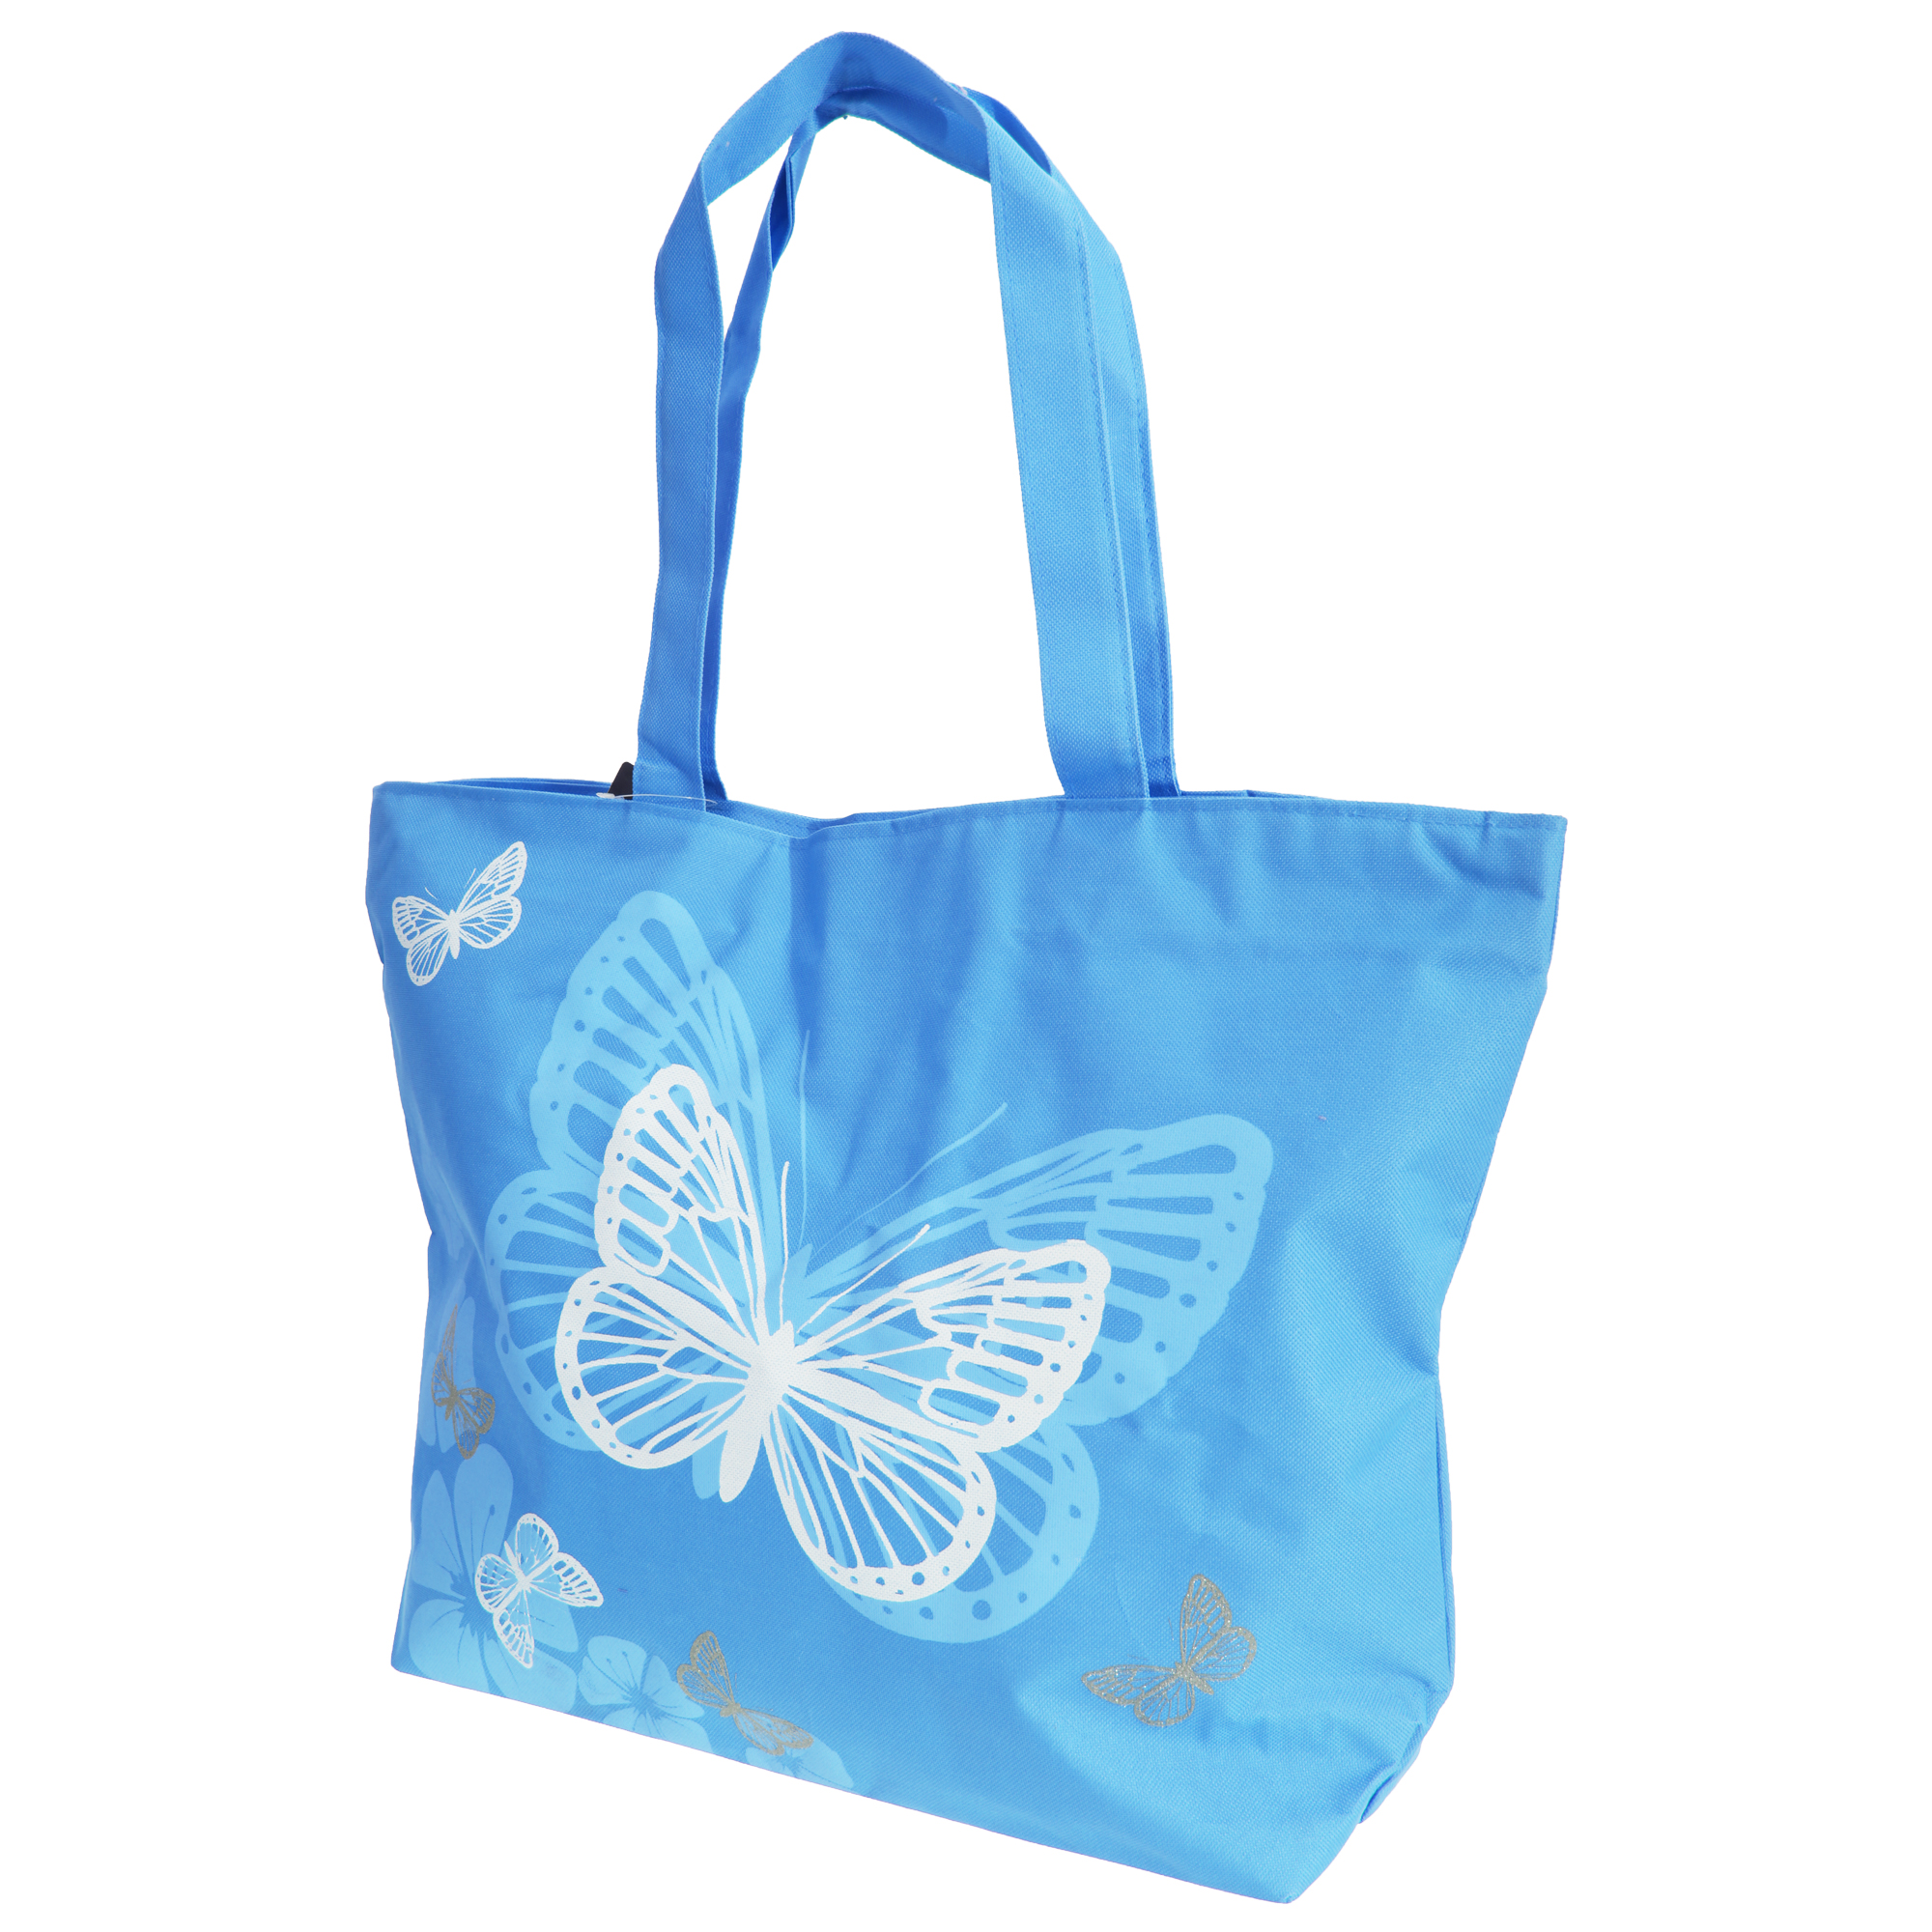 FLOSO Womens/Ladies Floral Butterfly Design Handbag (One Size) (Blue)